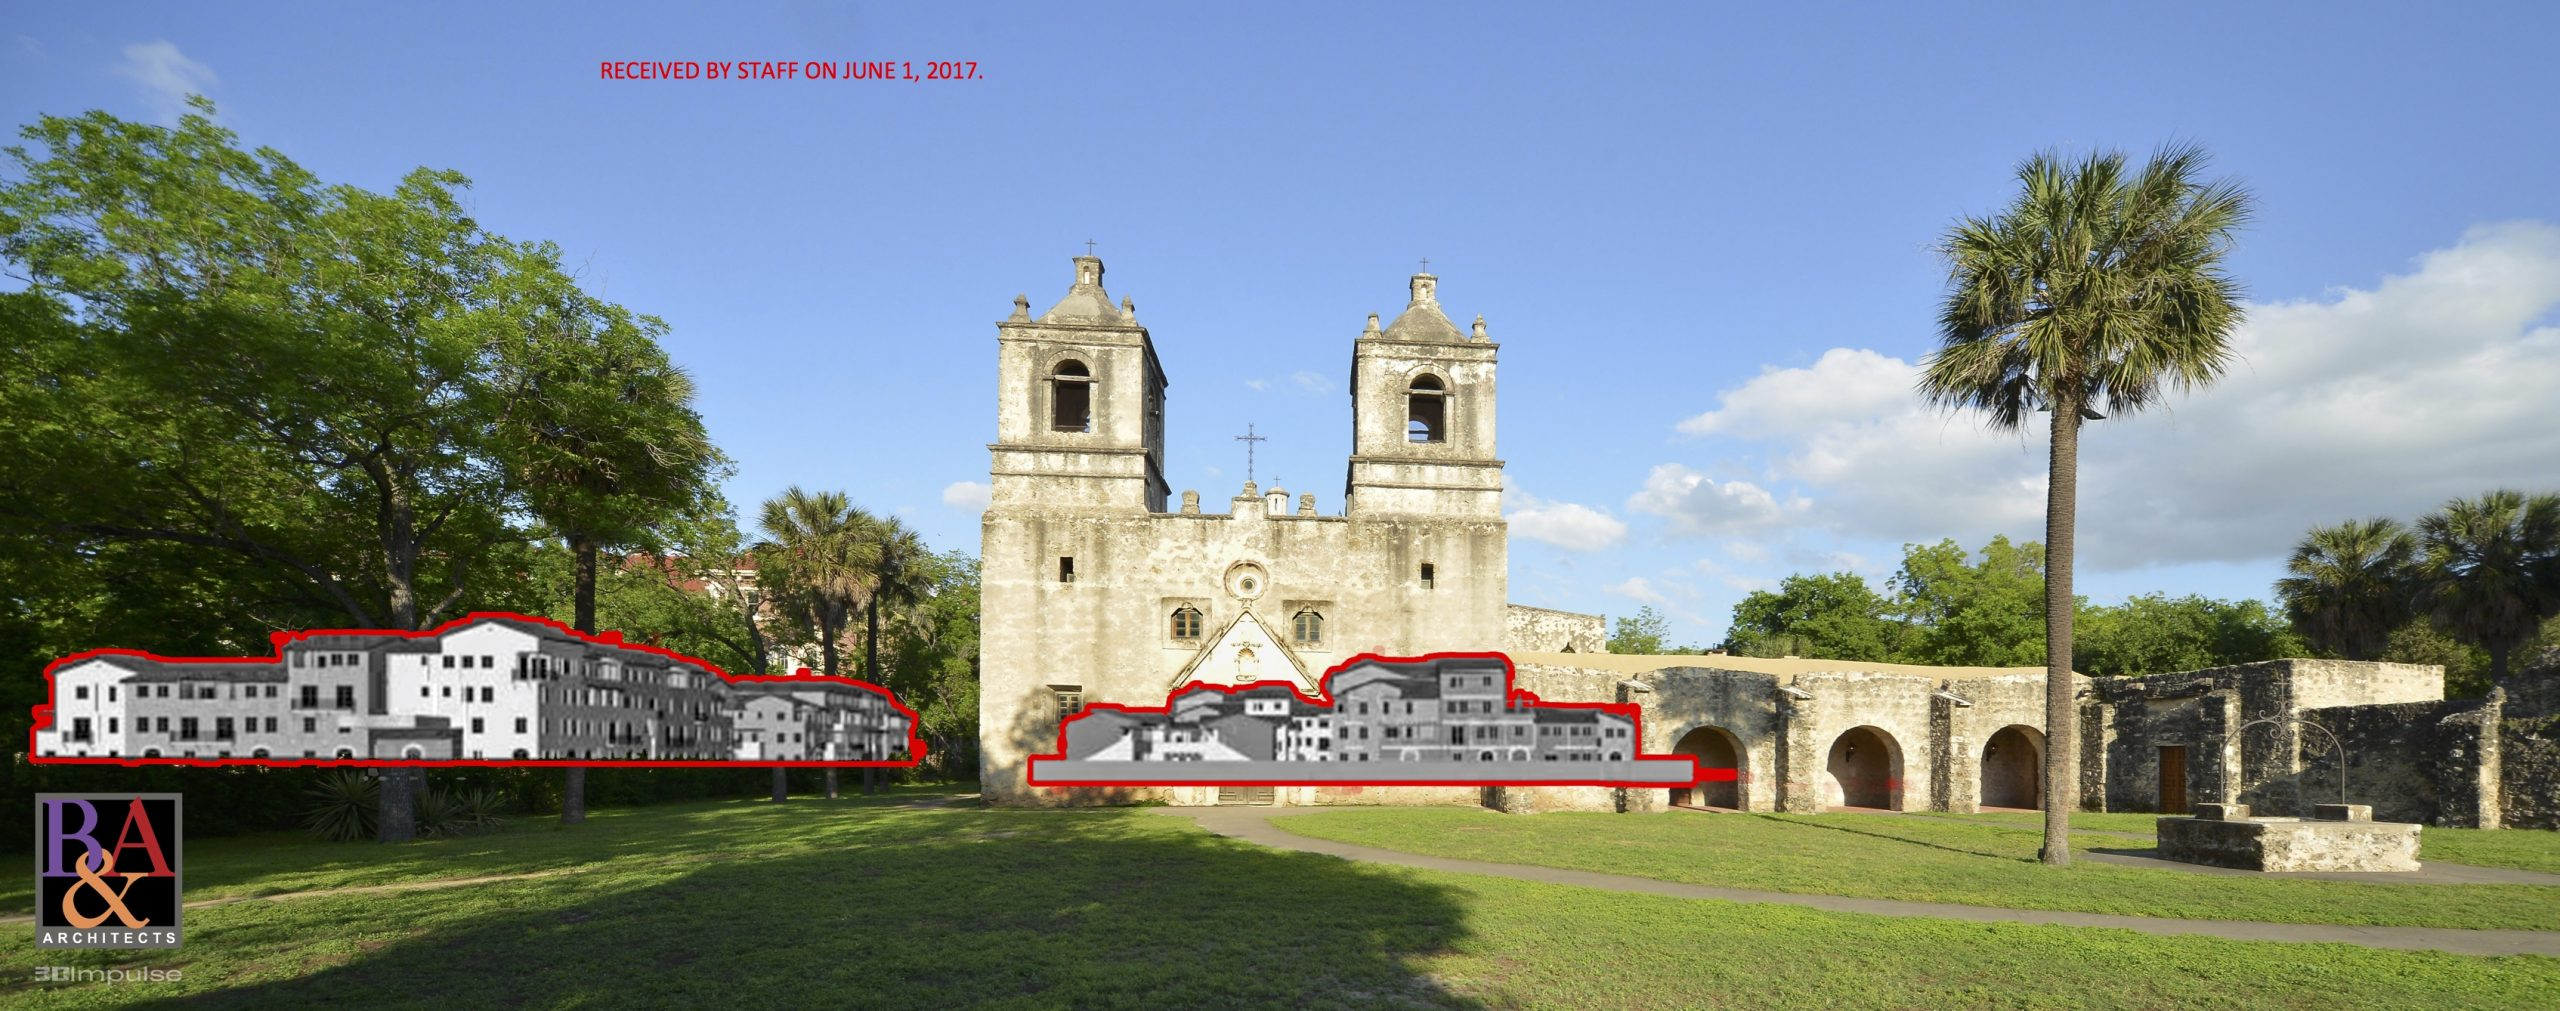 210 Development Group's visualization of the view shed at Mission Concepción.